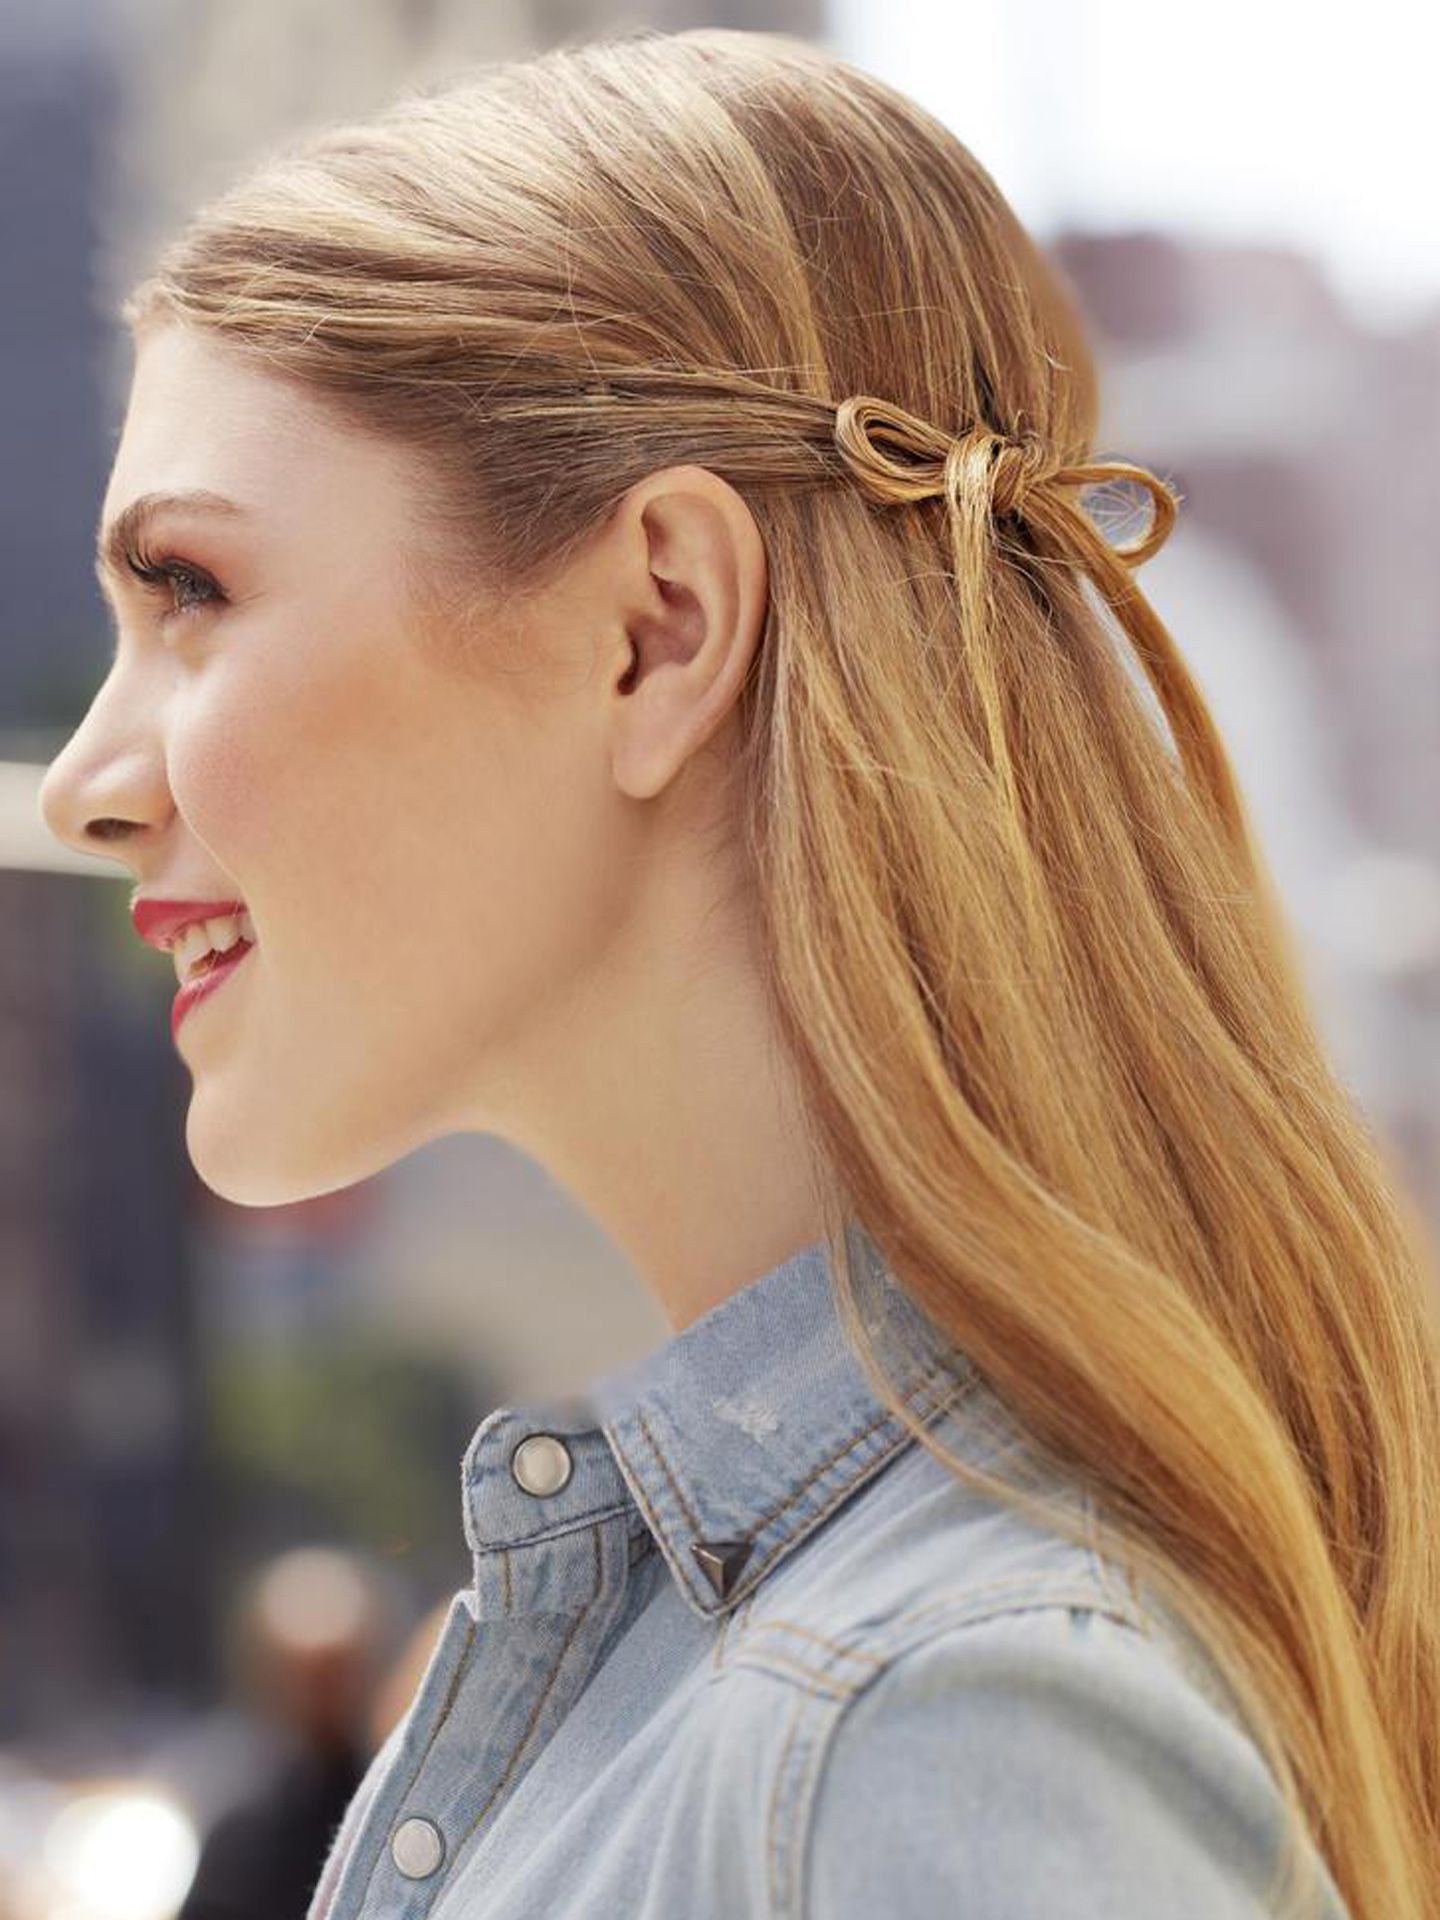 hair-ideas-style-what-to-wear-newyearseve-nye-holiday-outfits-winter-hair-bow.jpg